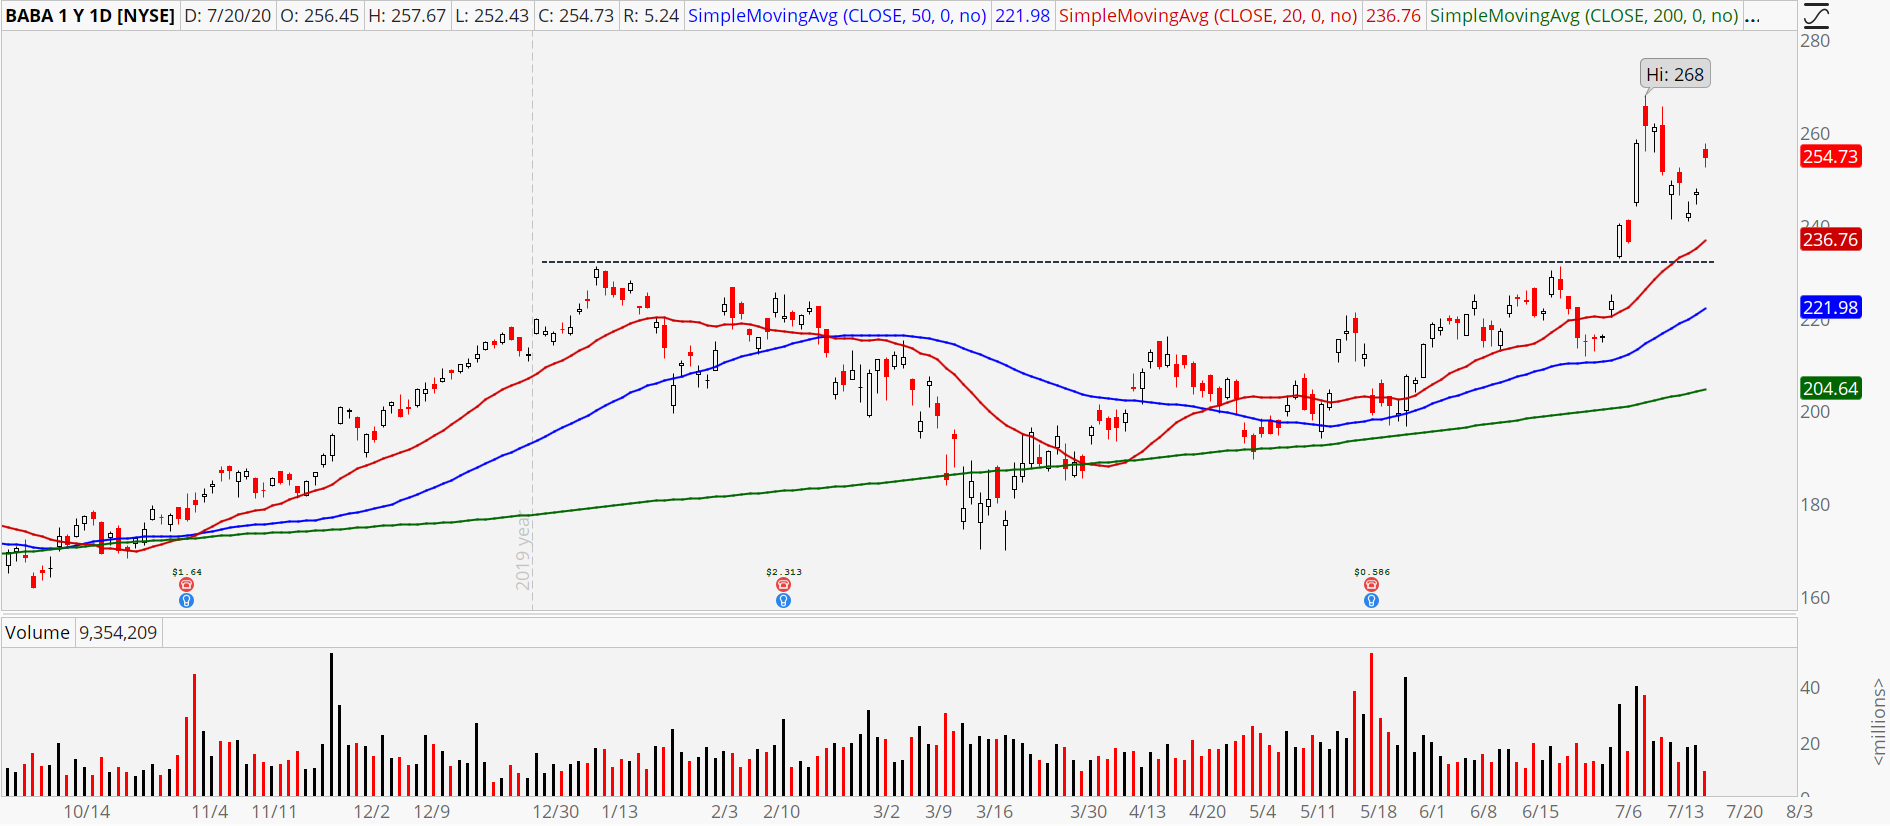 Alibaba (BABA) stock chart showing recent breakout & retracement